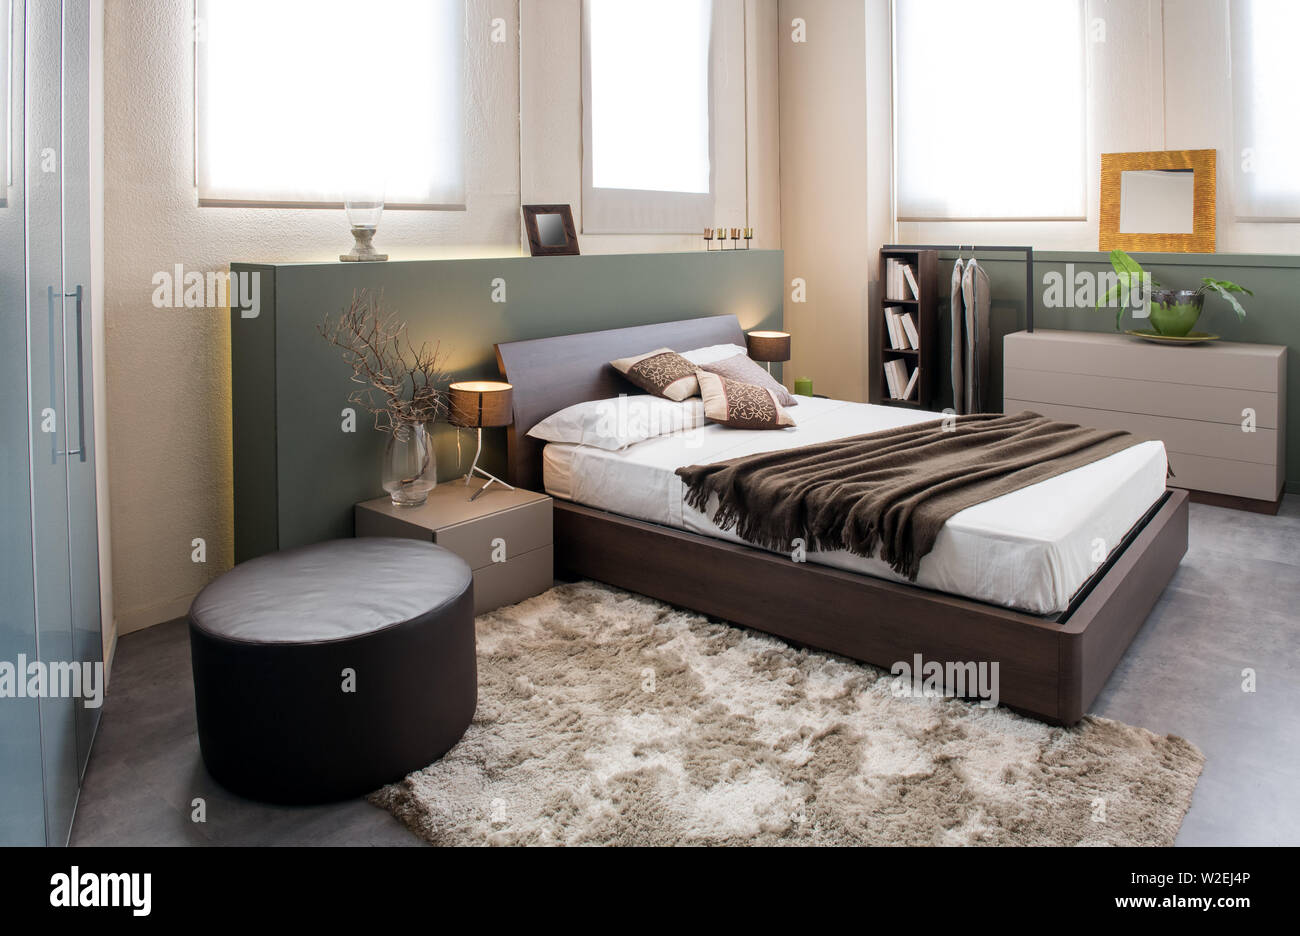 Modern luxury brown monochrome bedroom interior with large headboard above a double beds with cabinets, ottoman and built in wardrobe Stock Photo